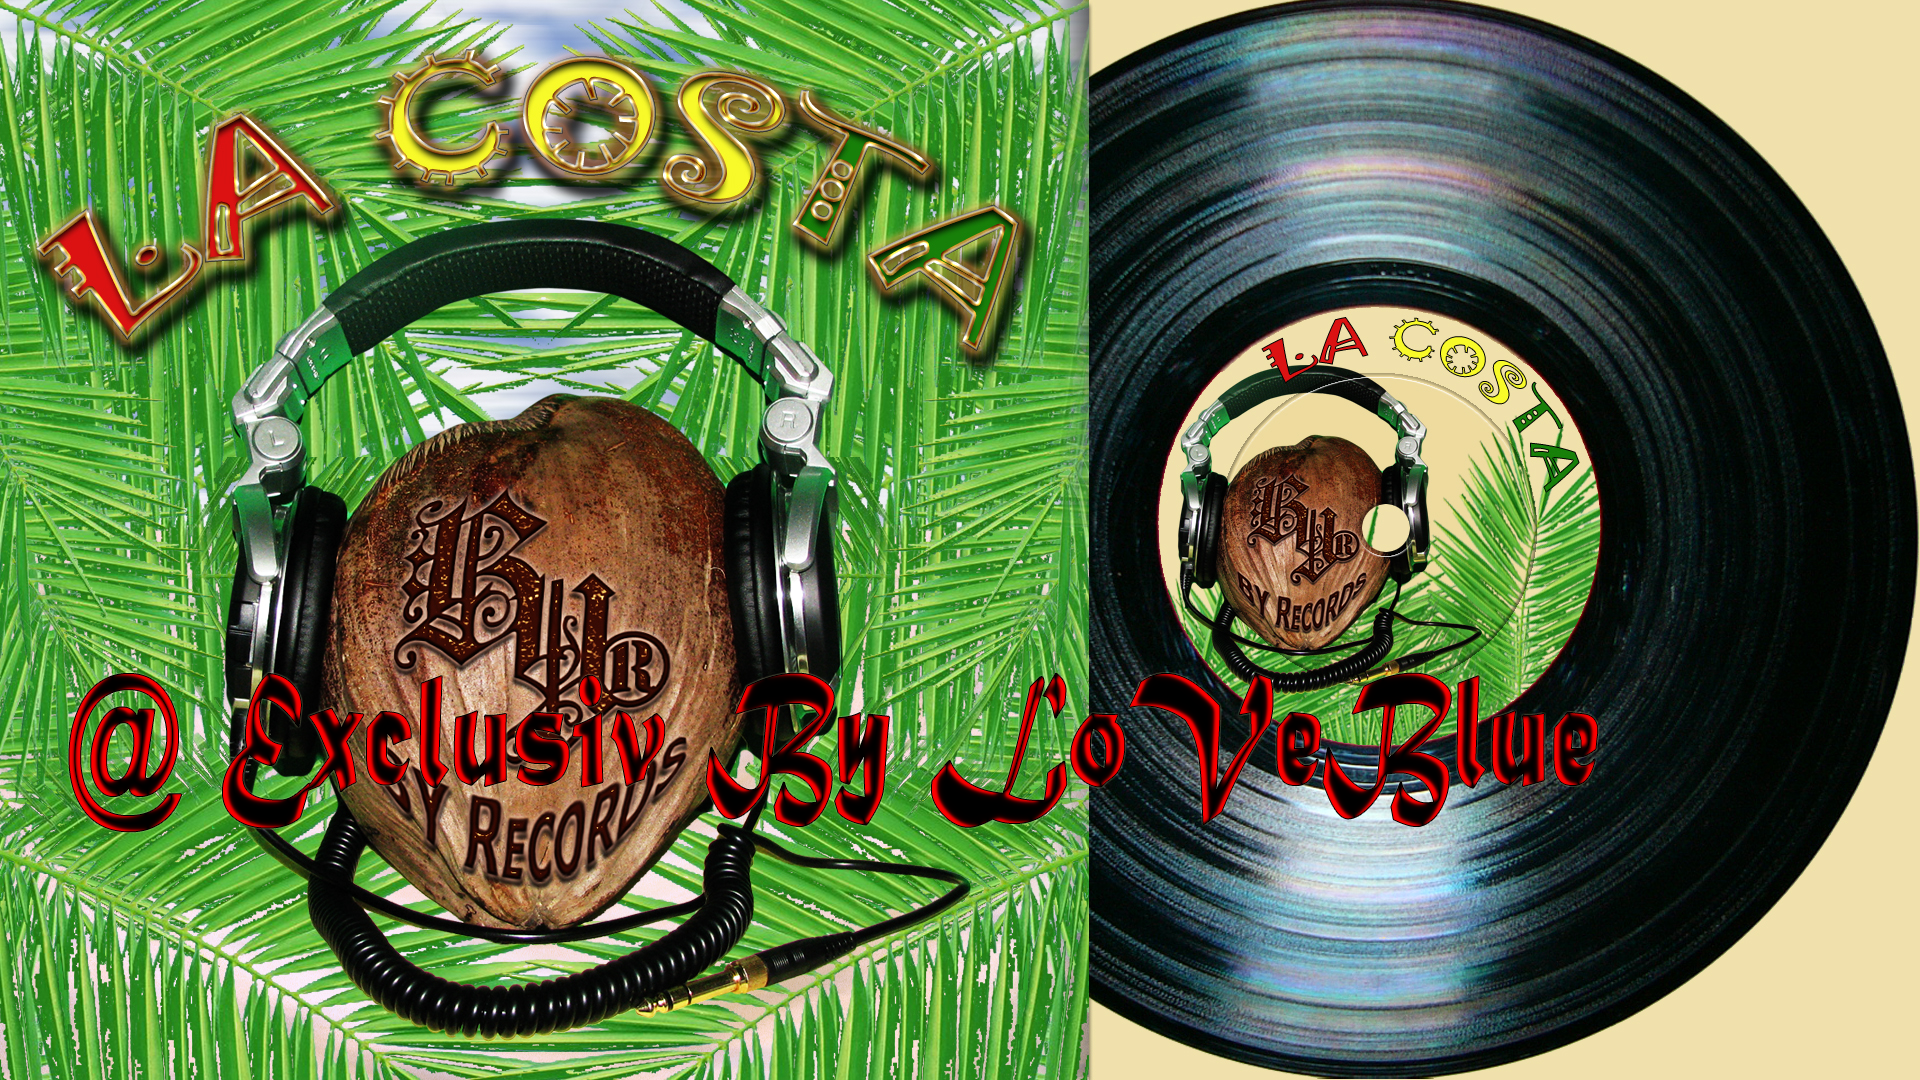 Big Yamo Records  - La Costa 2011 (CD ORIGINAL) EXCLUSIV